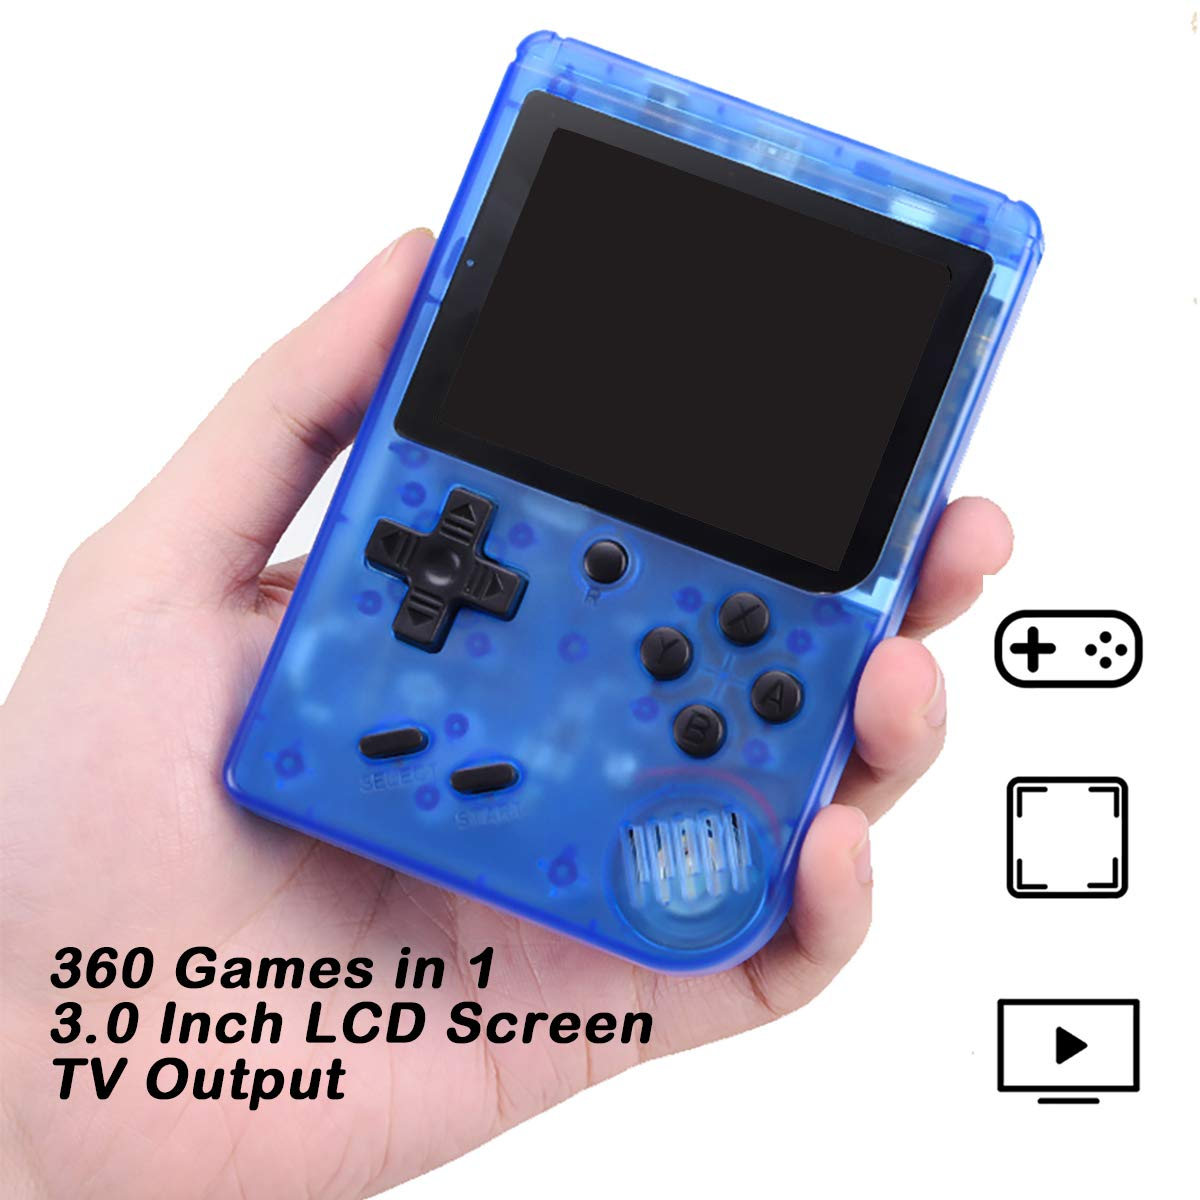 Efunlife Handheld Game Console, 360 Classic Games 3 Inch LCD Screen Retro FC System Portable Sized Game Console Support AV Out TV, Good Gift for Boy Kids by Efunlife (Image #3)